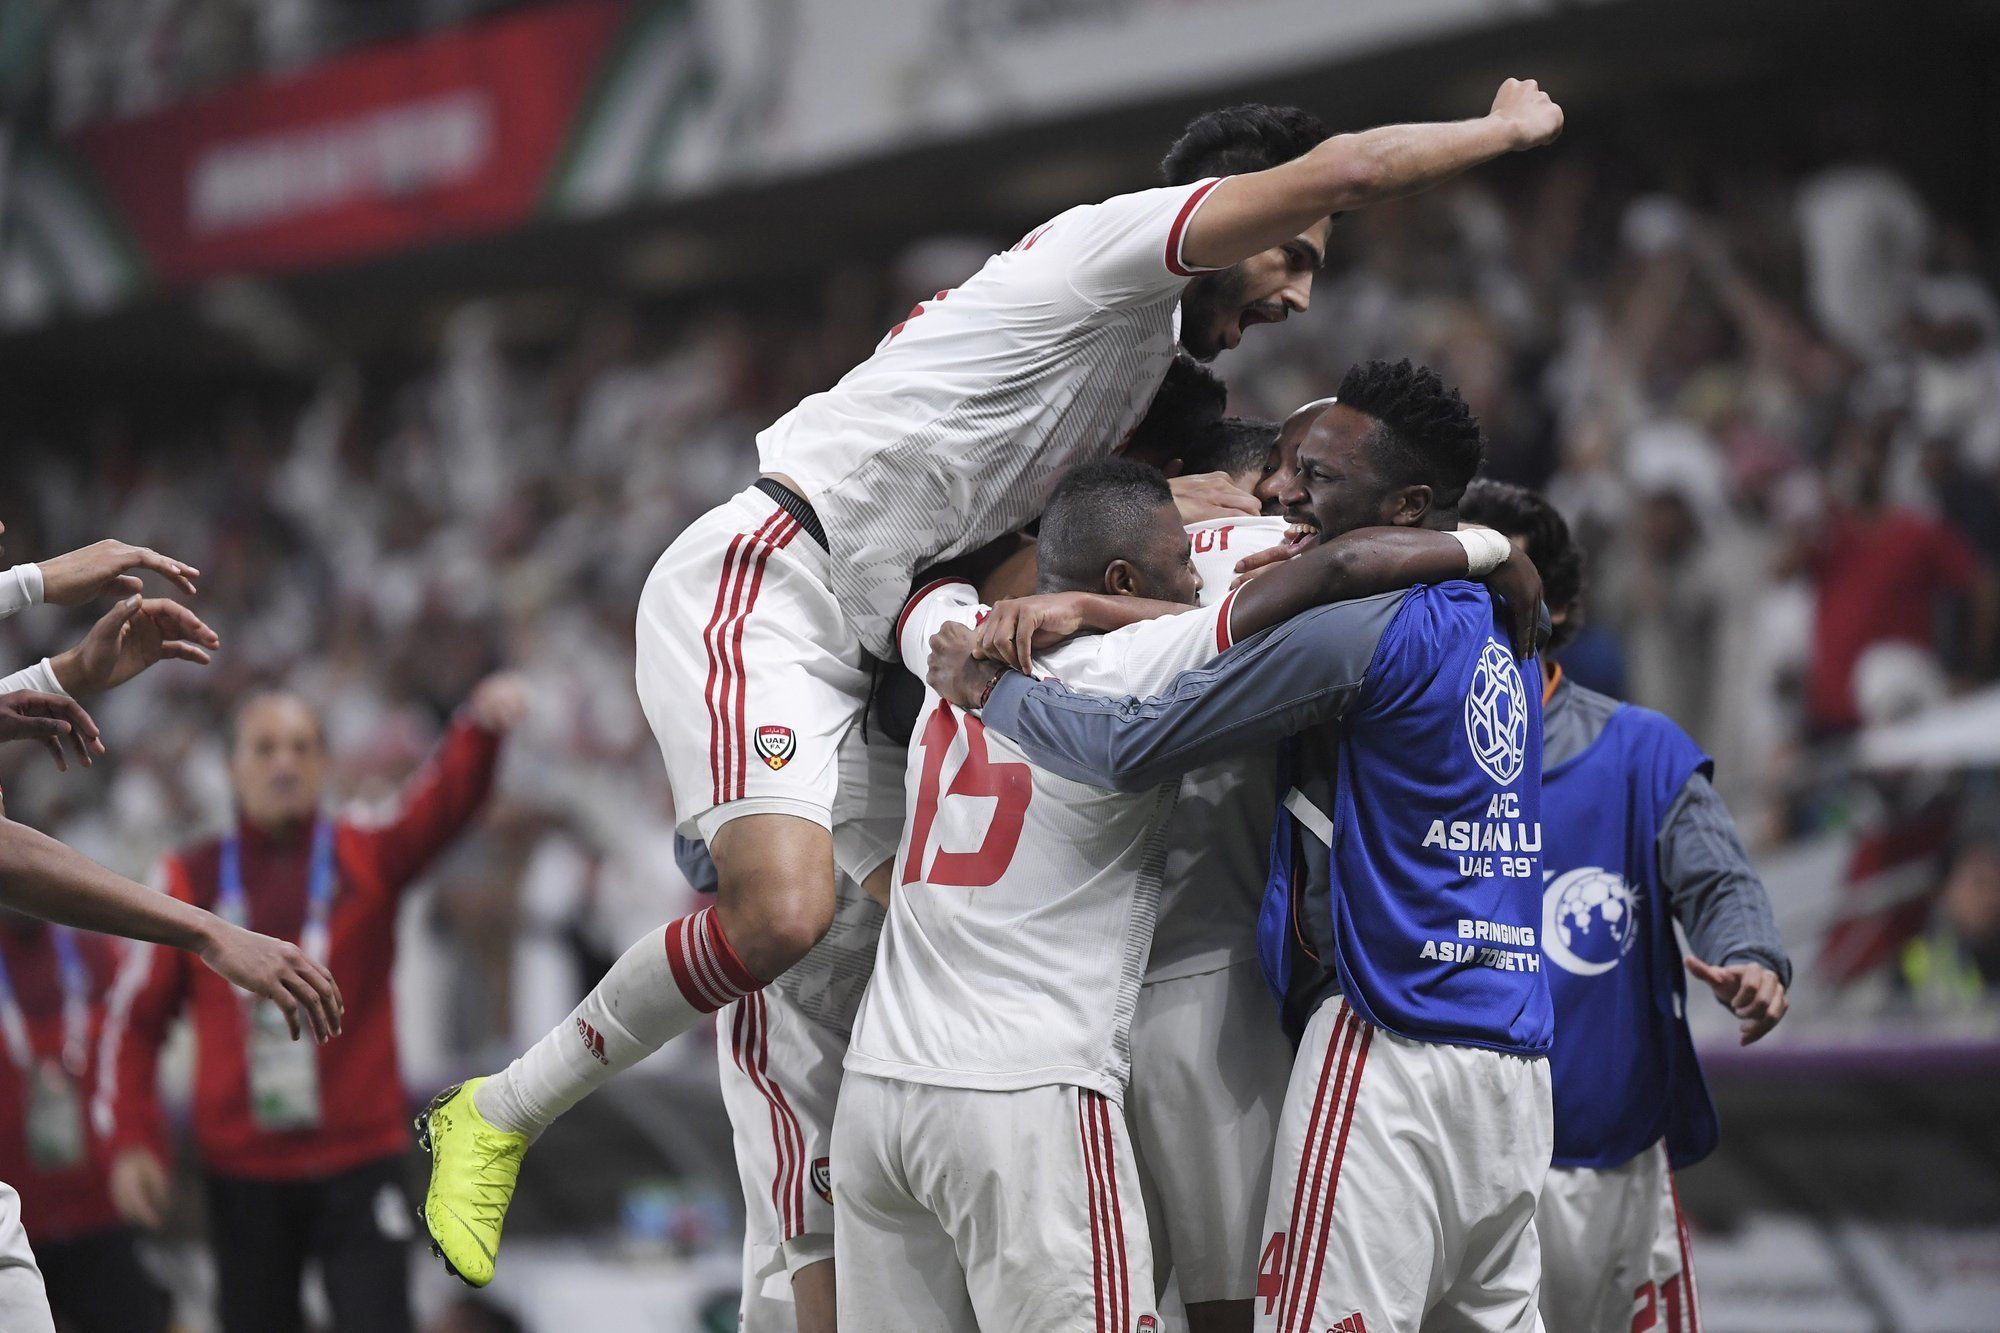 UAE players celebrate a goal during the AFC Asian Cup quarterfinal soccer match with Australia at Hazza Bin Zayed Stadium in Al Ain on Jan 25. — AP